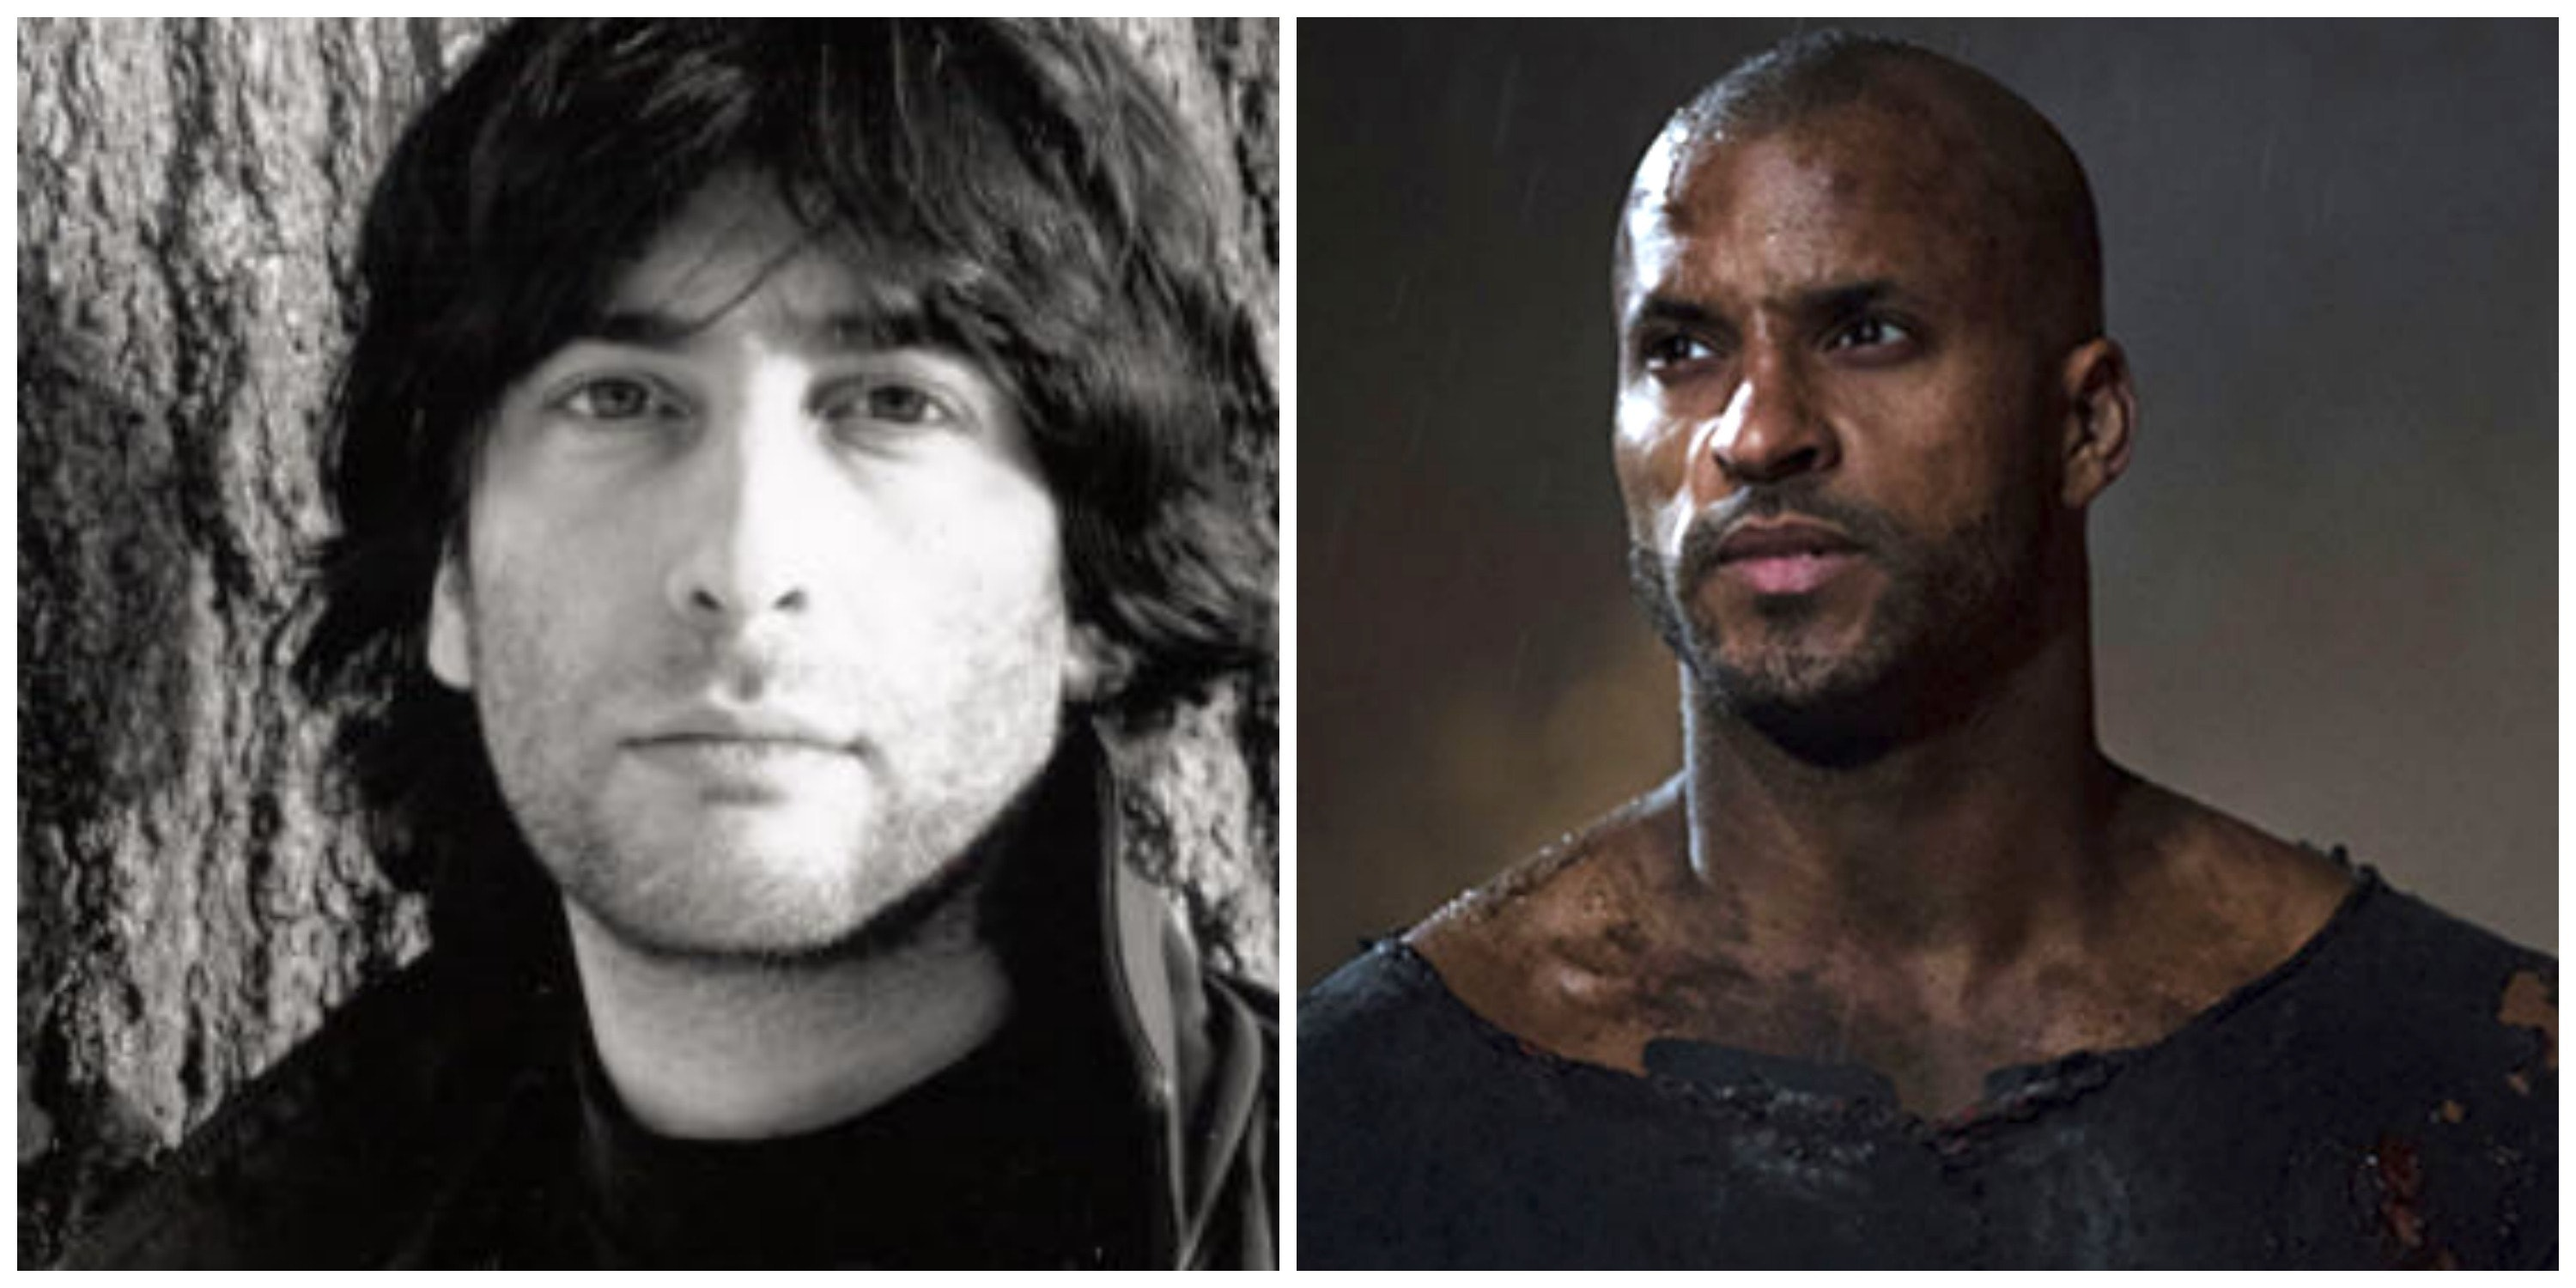 'American Gods' Could Create Another Neil Gaiman Spinoff Show